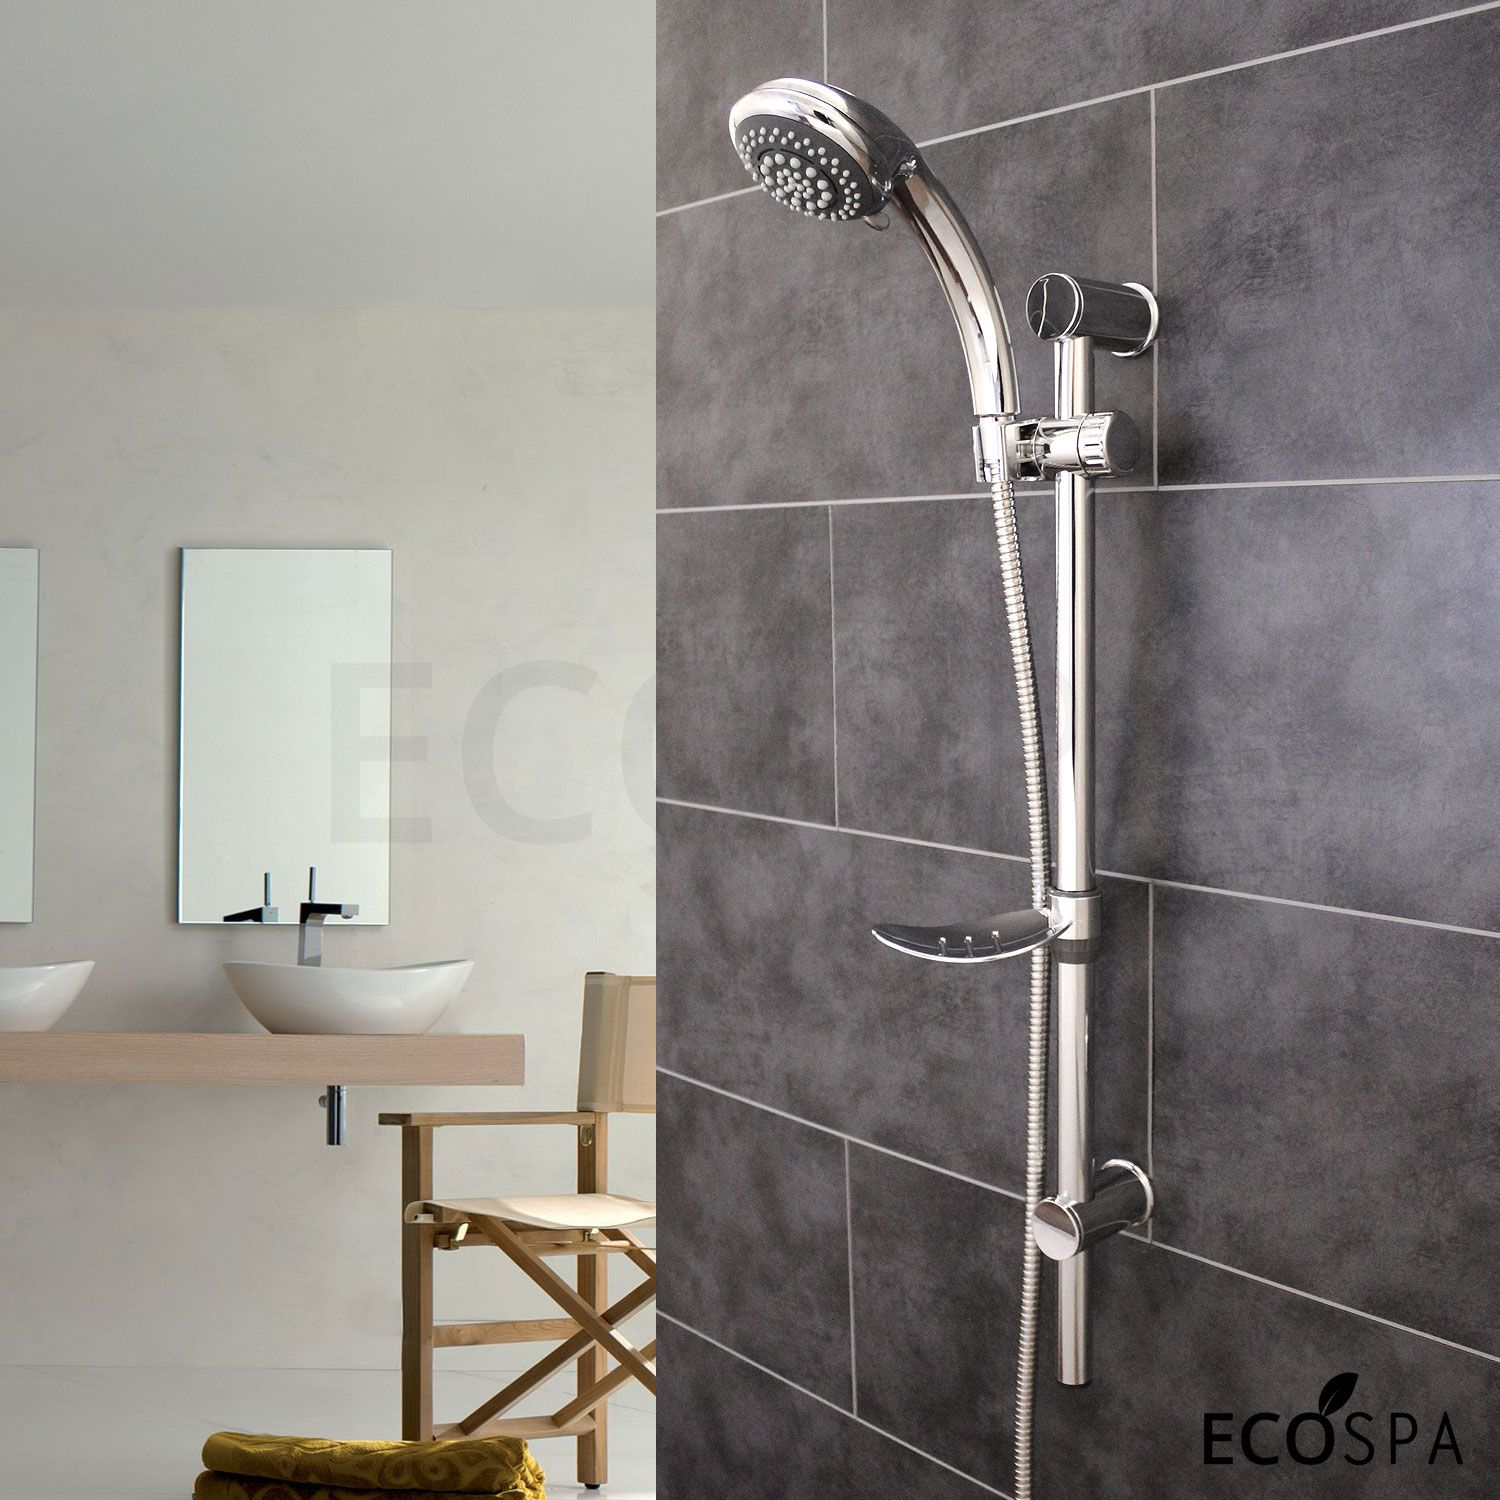 EcoSpa Swift 6 Mode Chrome Shower Kit with Soap Dish and Adjustable ...